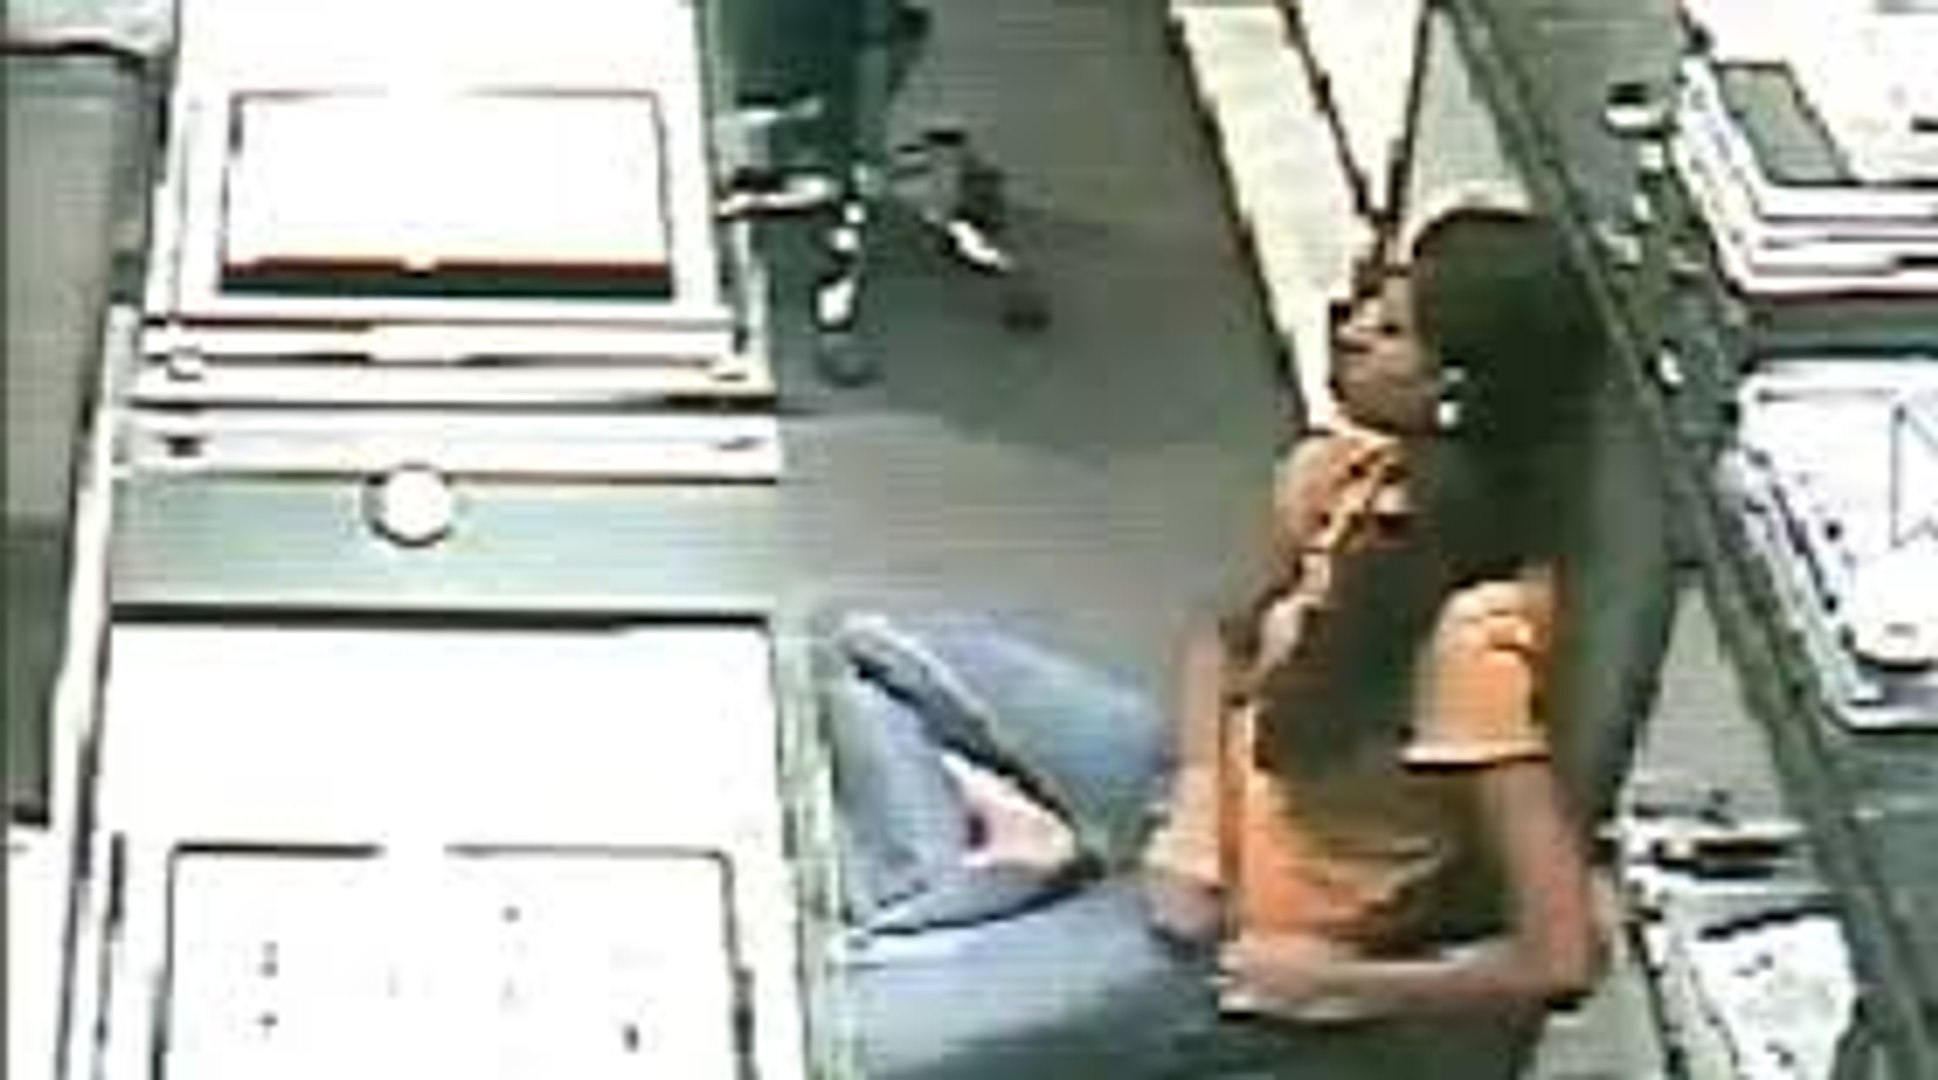 Women Gold Theft capture by CCTV